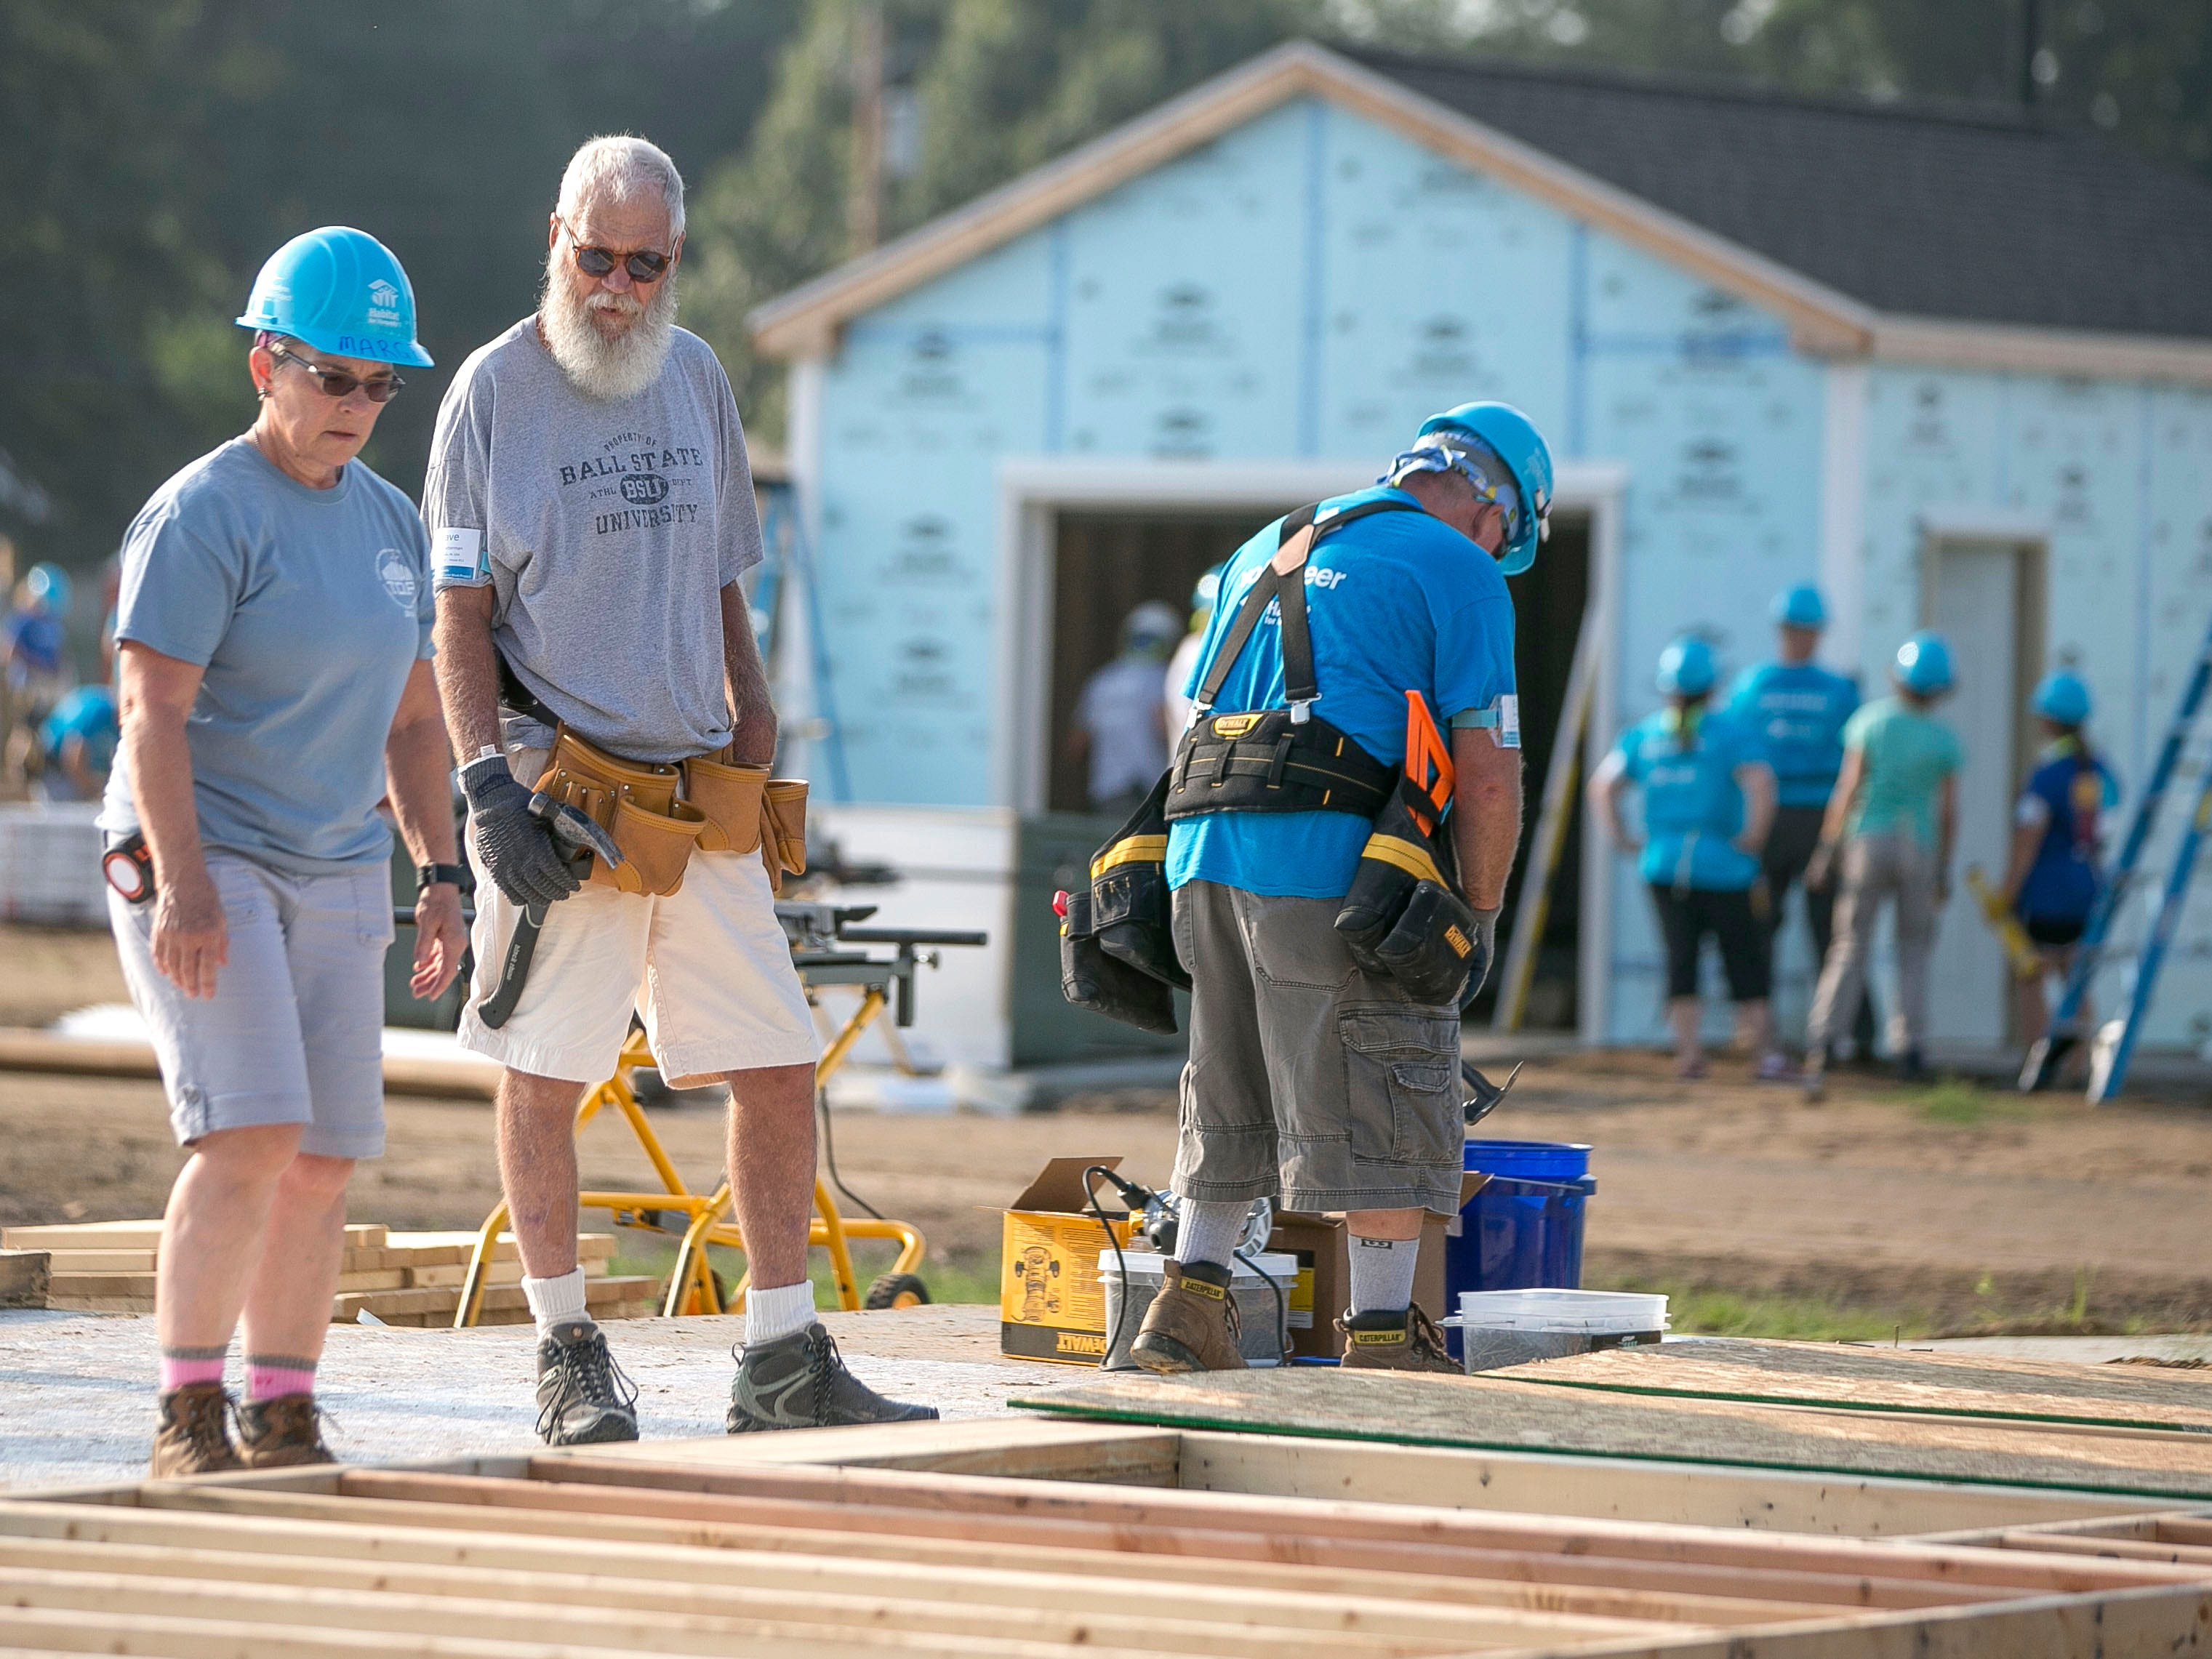 David Letterman can be seen volunteering on the first day of the weeklong Jimmy & Rosalynn Carter Work Project.